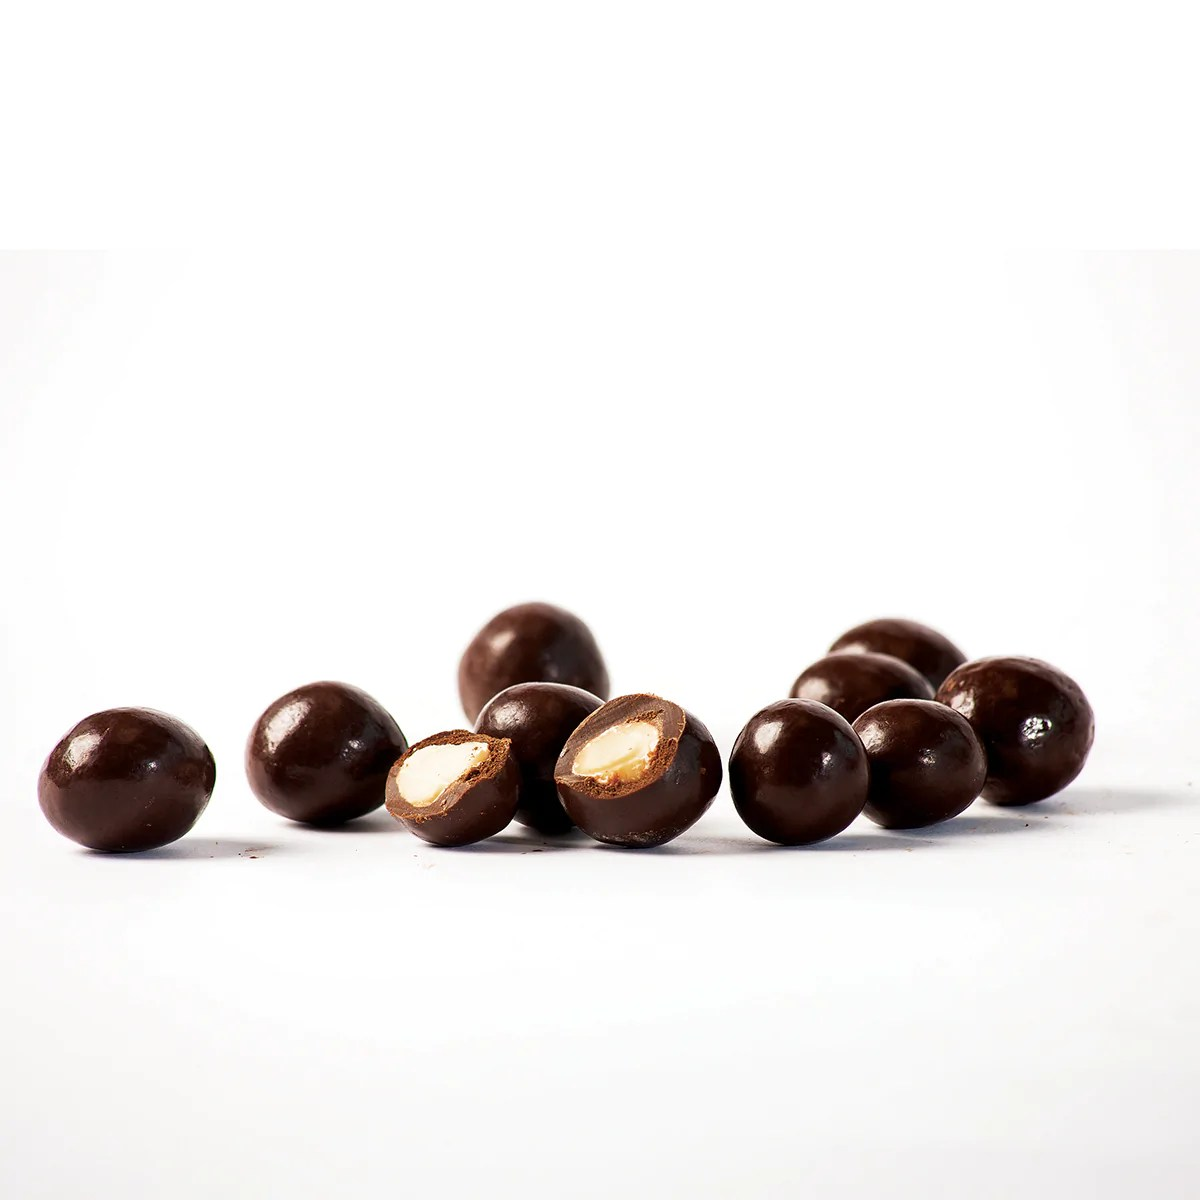 Milk Chocolate Roasted Peanuts   The Confectionery House   Online Chocolate